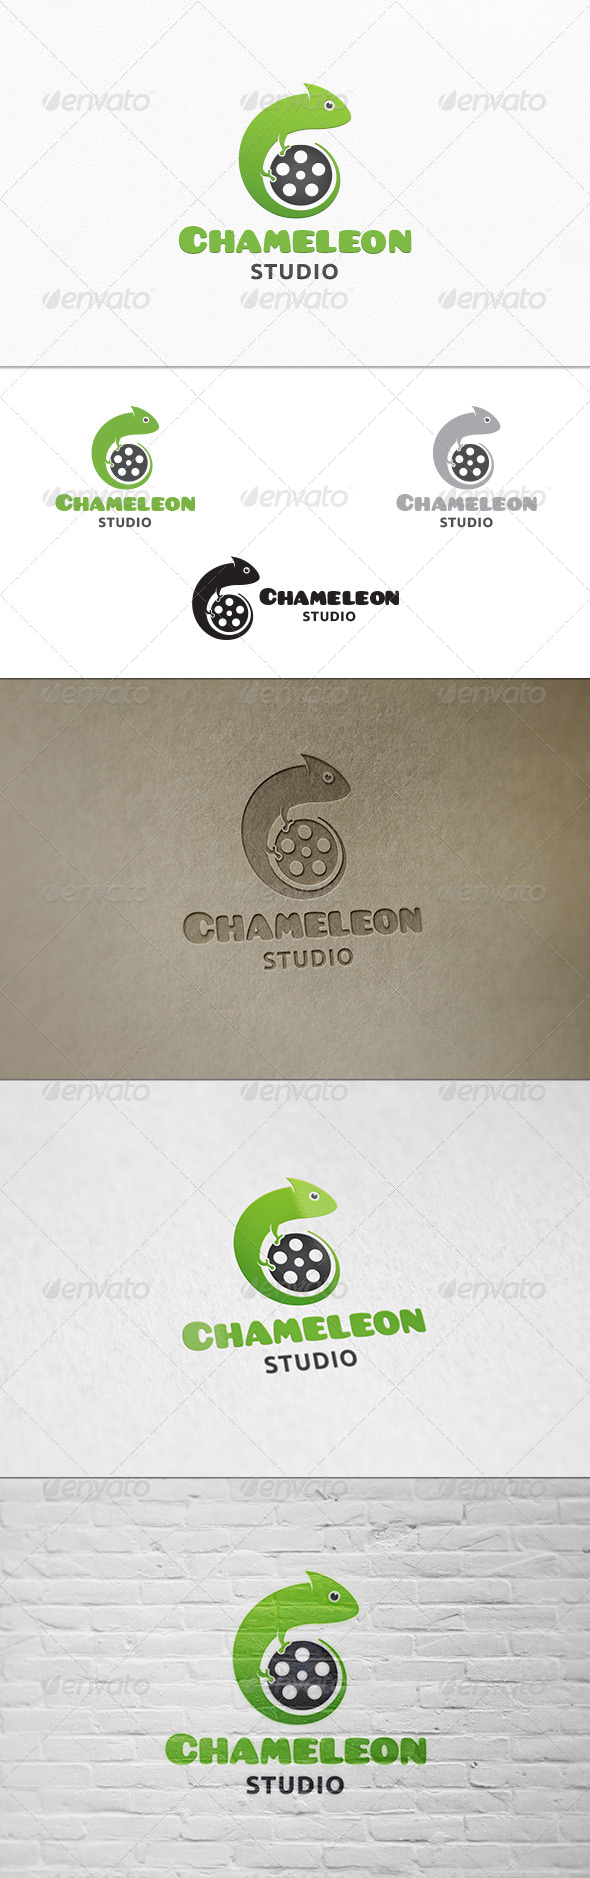 GraphicRiver Chameleon Studio Logo Template 7668408